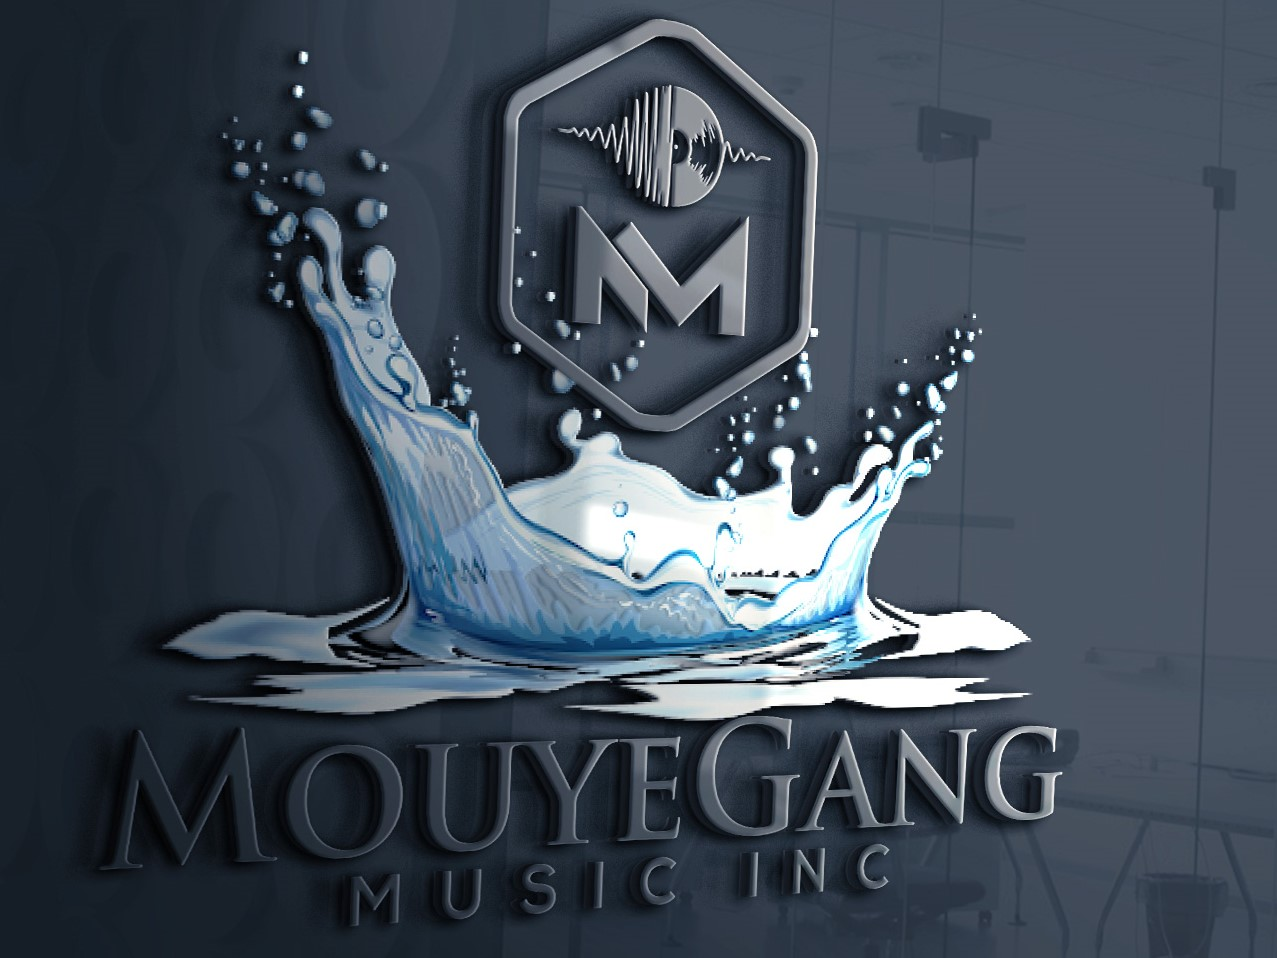 MouyeGang Music Inc. Reaching The Next Milestone With An Influx Of Talented Artists